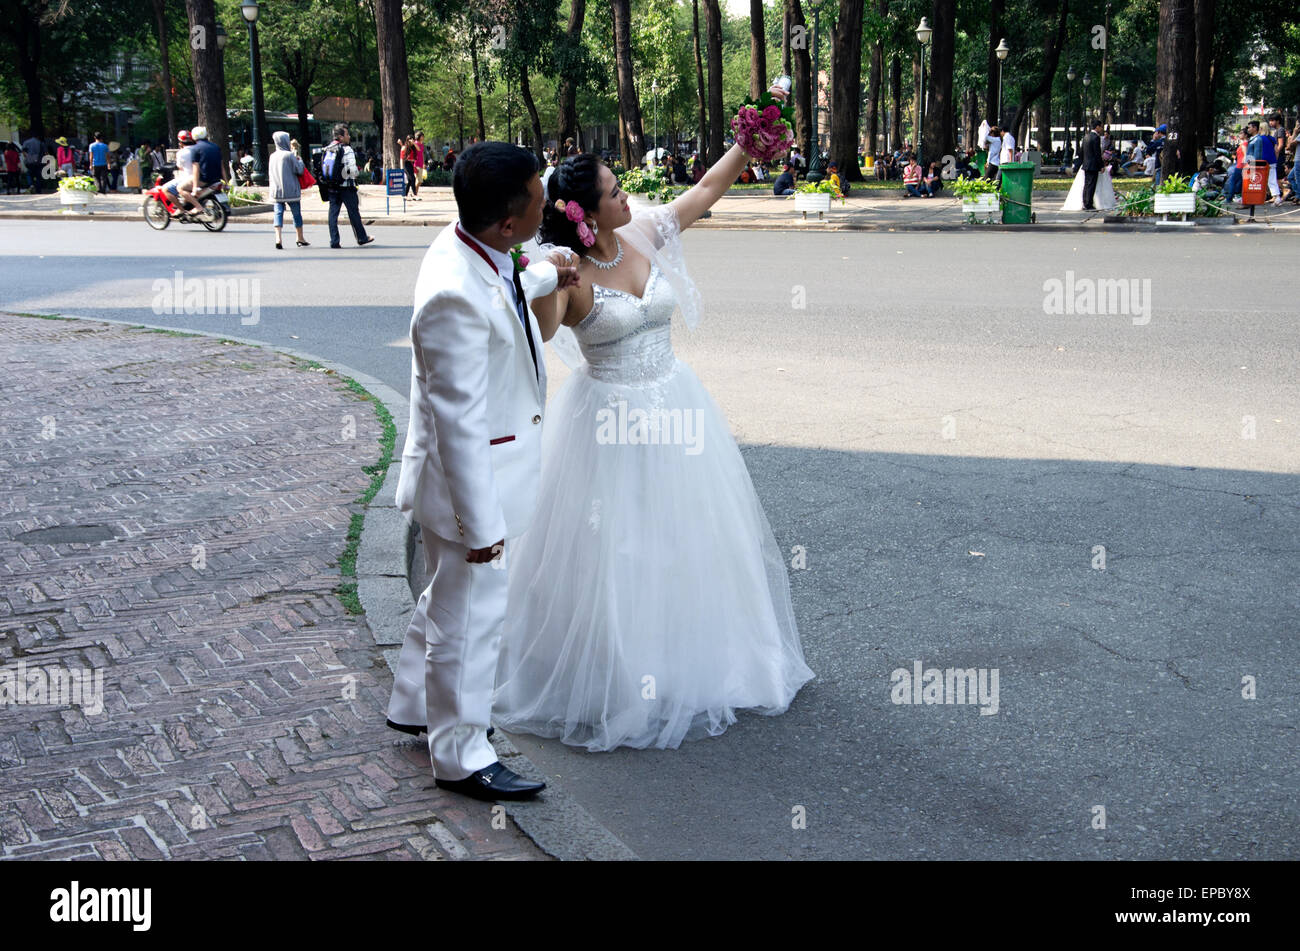 Bride and groom being photographed on street - Stock Image